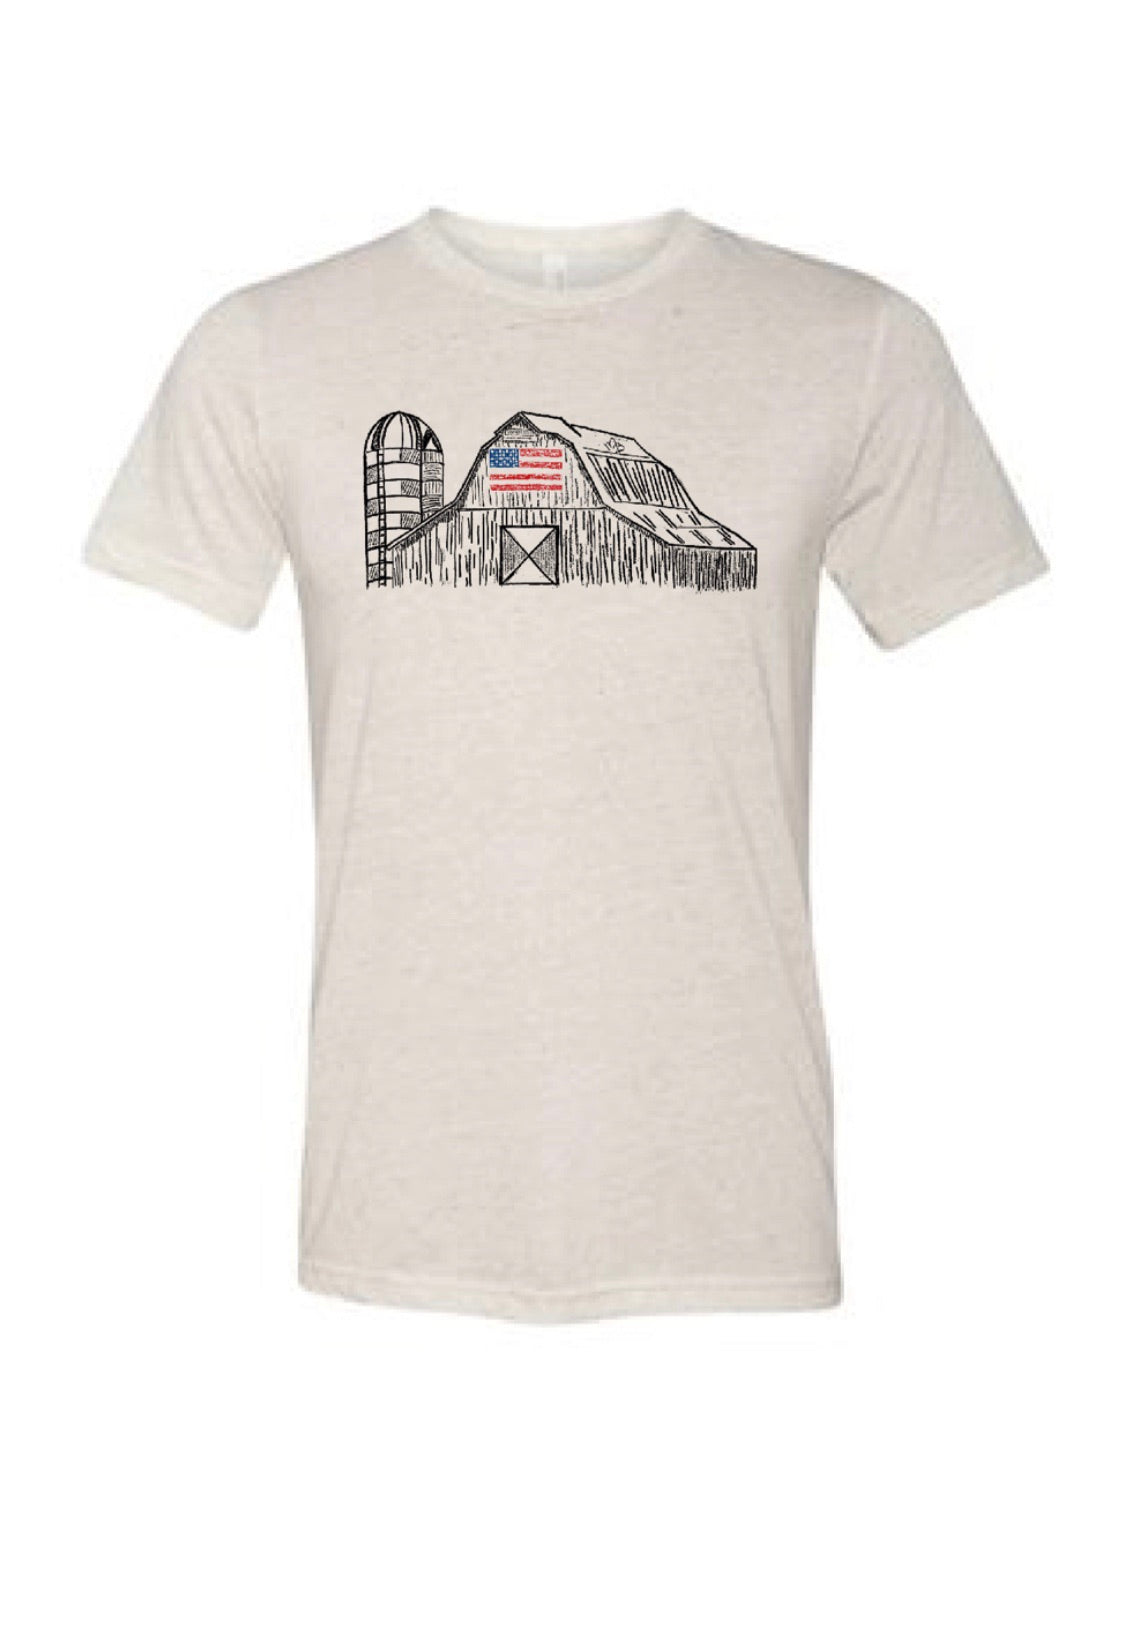 TH The All American Tee